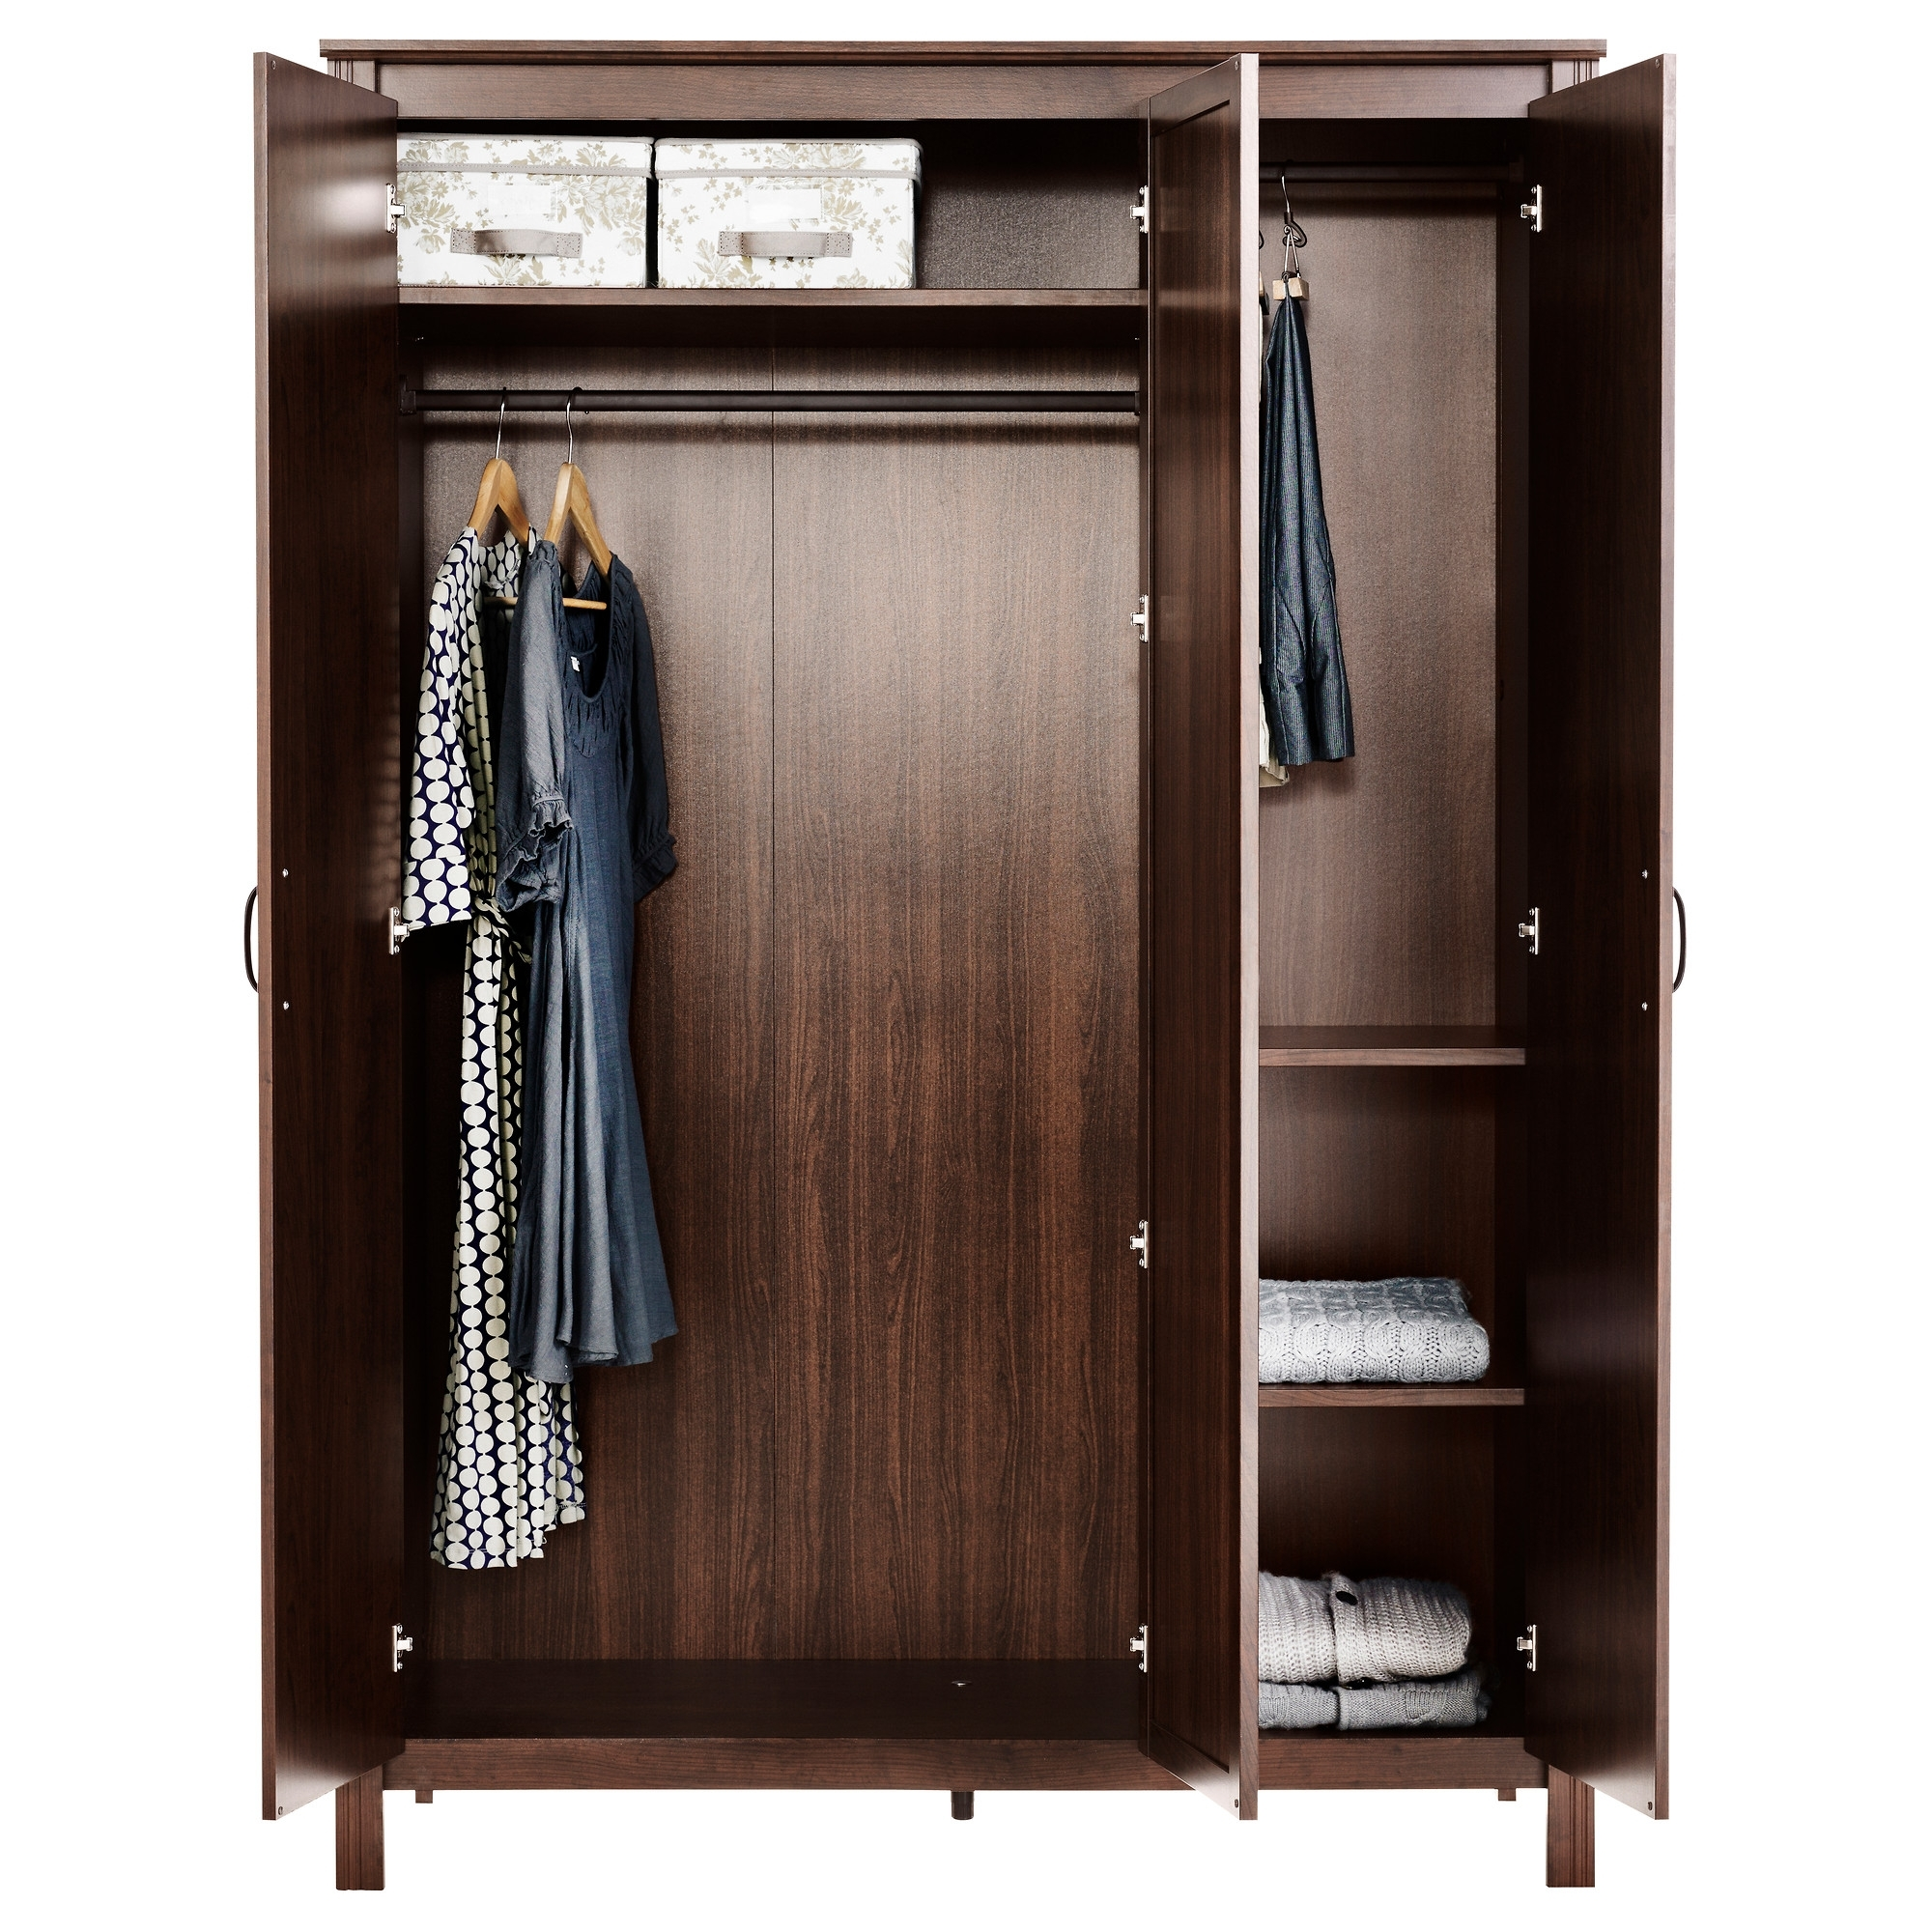 Dark Wood Wardrobes With Drawers For Most Current Modern Large Dark Wooden Wardrobe Closet With Doors And Hanger Rod (View 5 of 15)